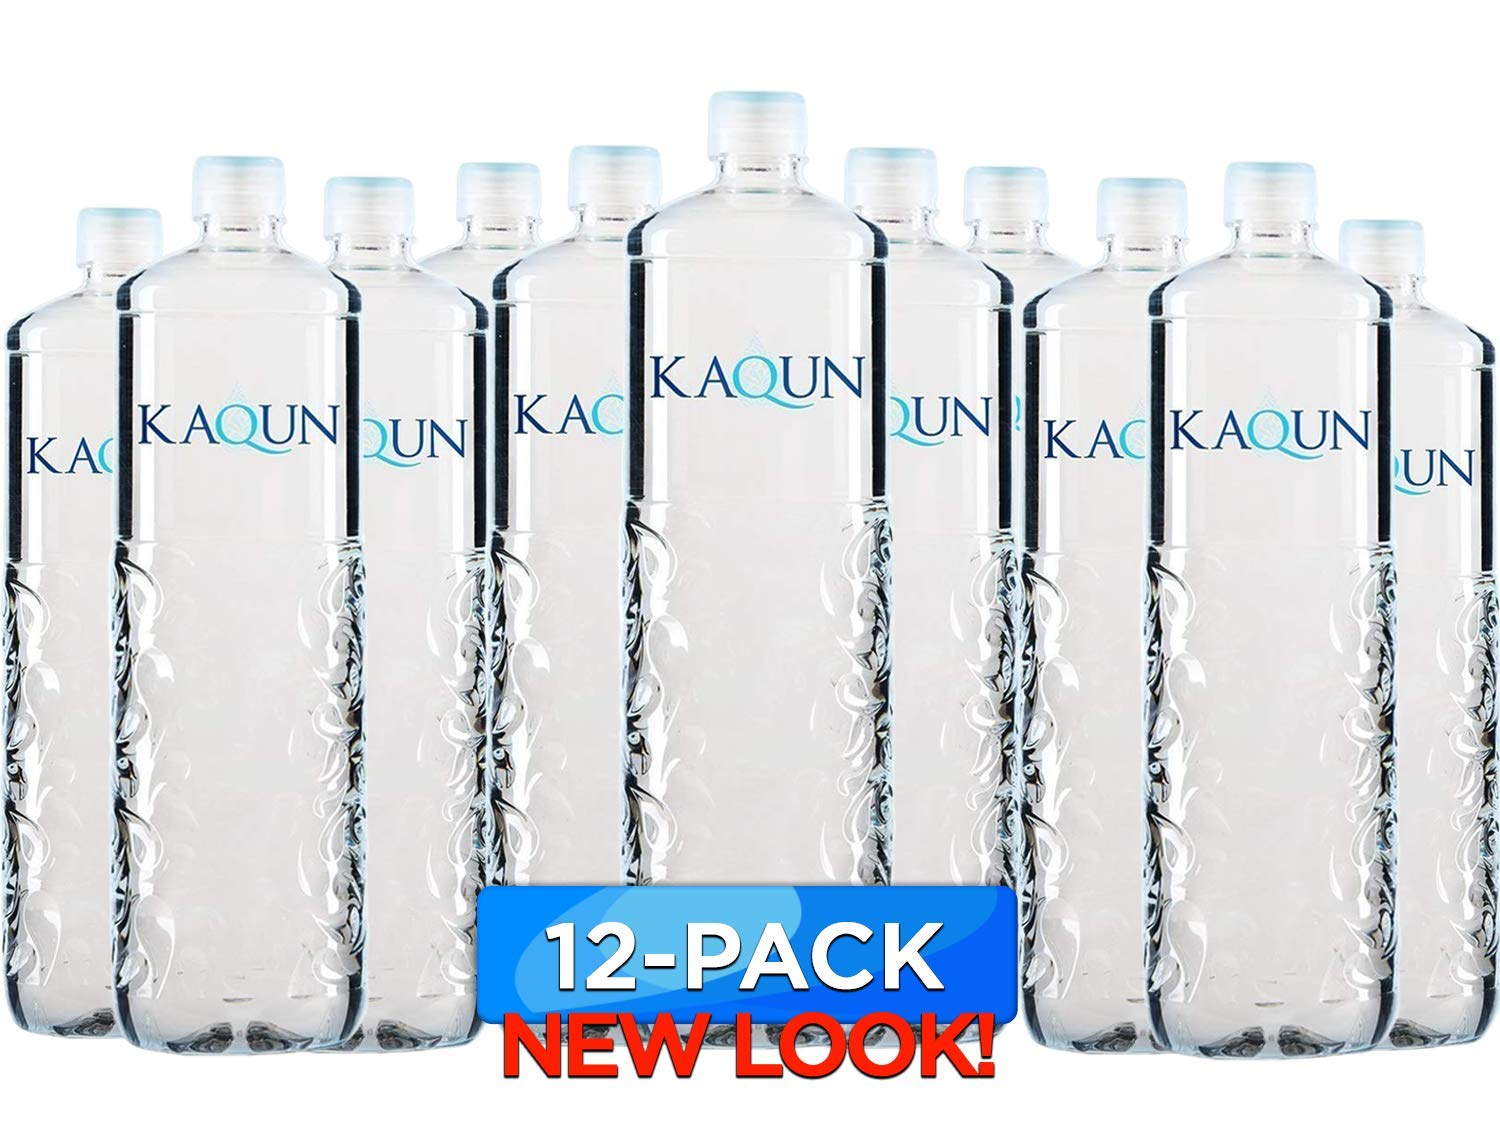 KAQUN Water 12-Pack, Oxygenated & Refreshing, Oxygen Infused Bottled Drinking Water, Chemical Free, Detox, for Kaqun Therapy, Authorized Retailer by BodyHealth